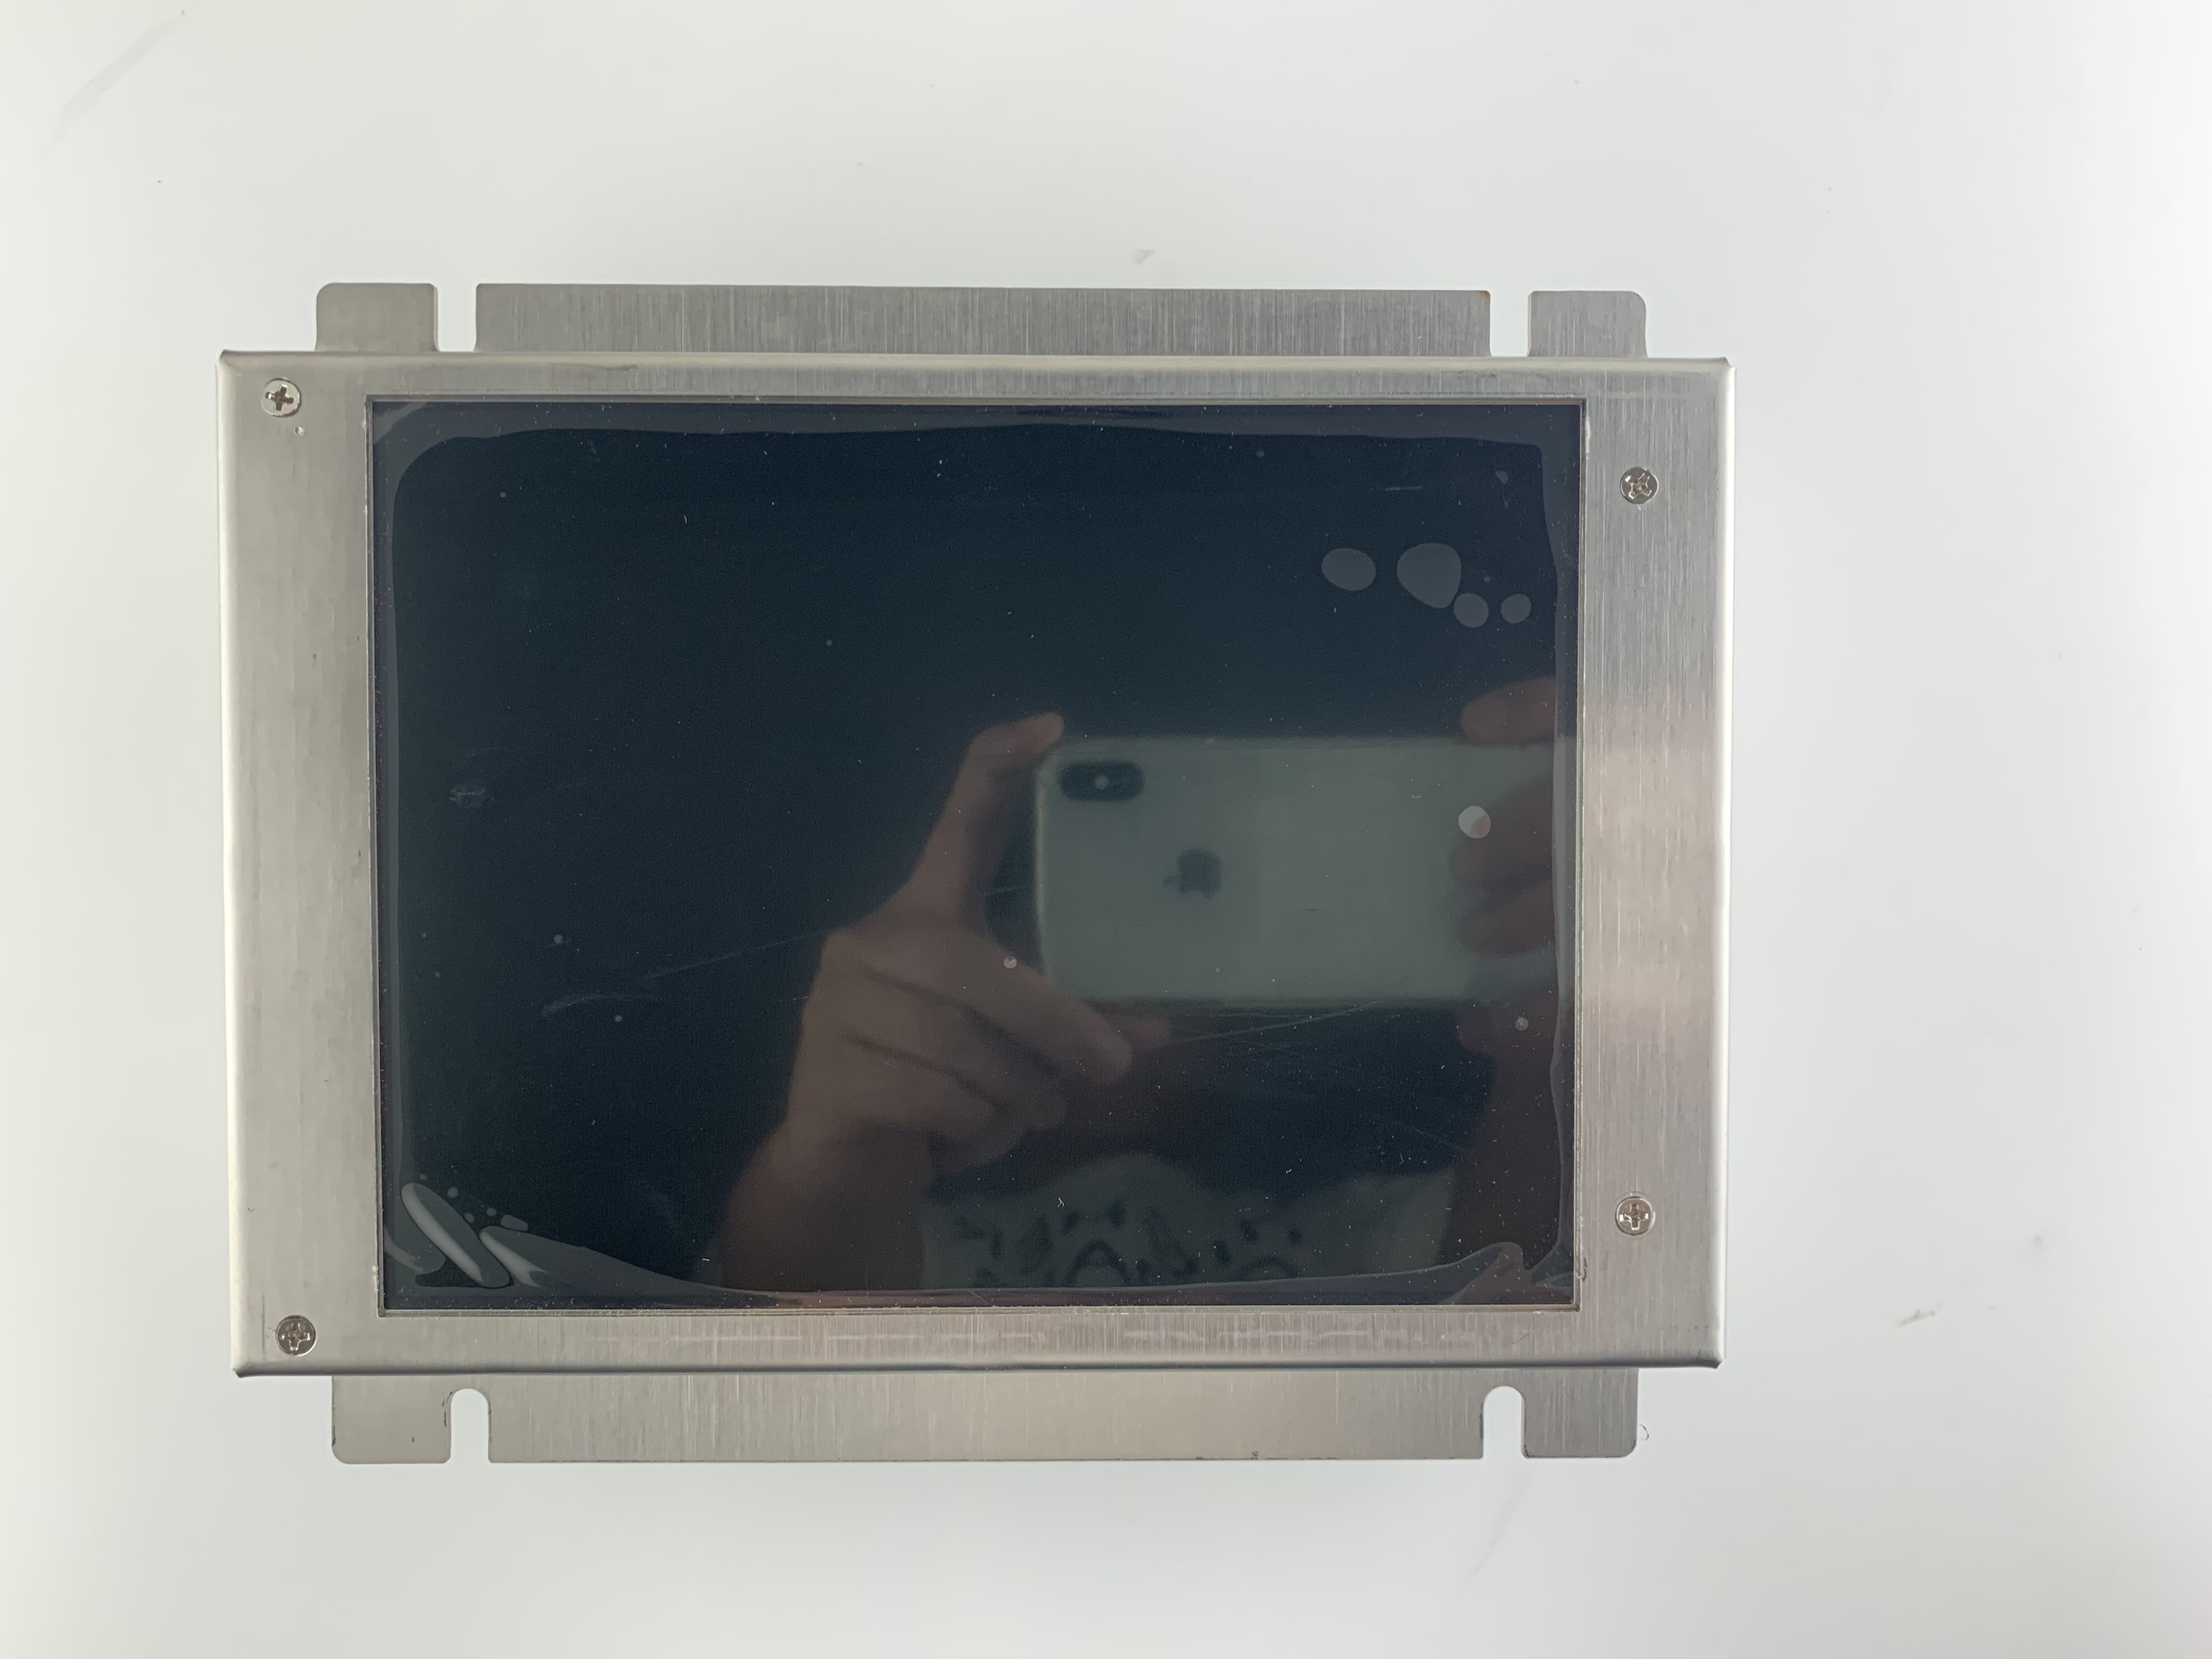 A61L 0001 0072 compatible LCD display 9 inch for CNC machine replace CRT monitor HAVE IN